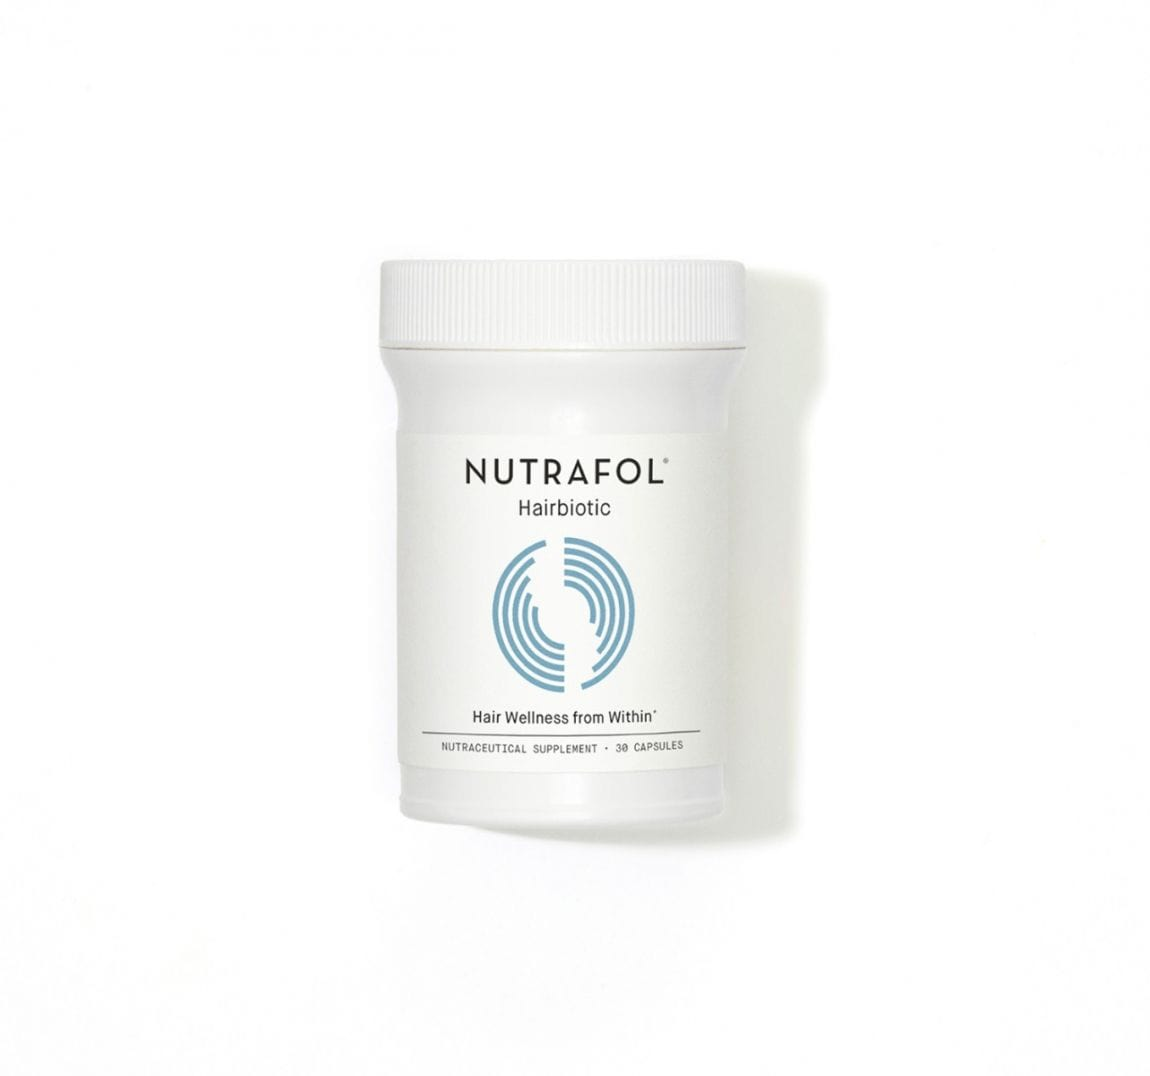 image descriptionNutrafol Hairbiotic